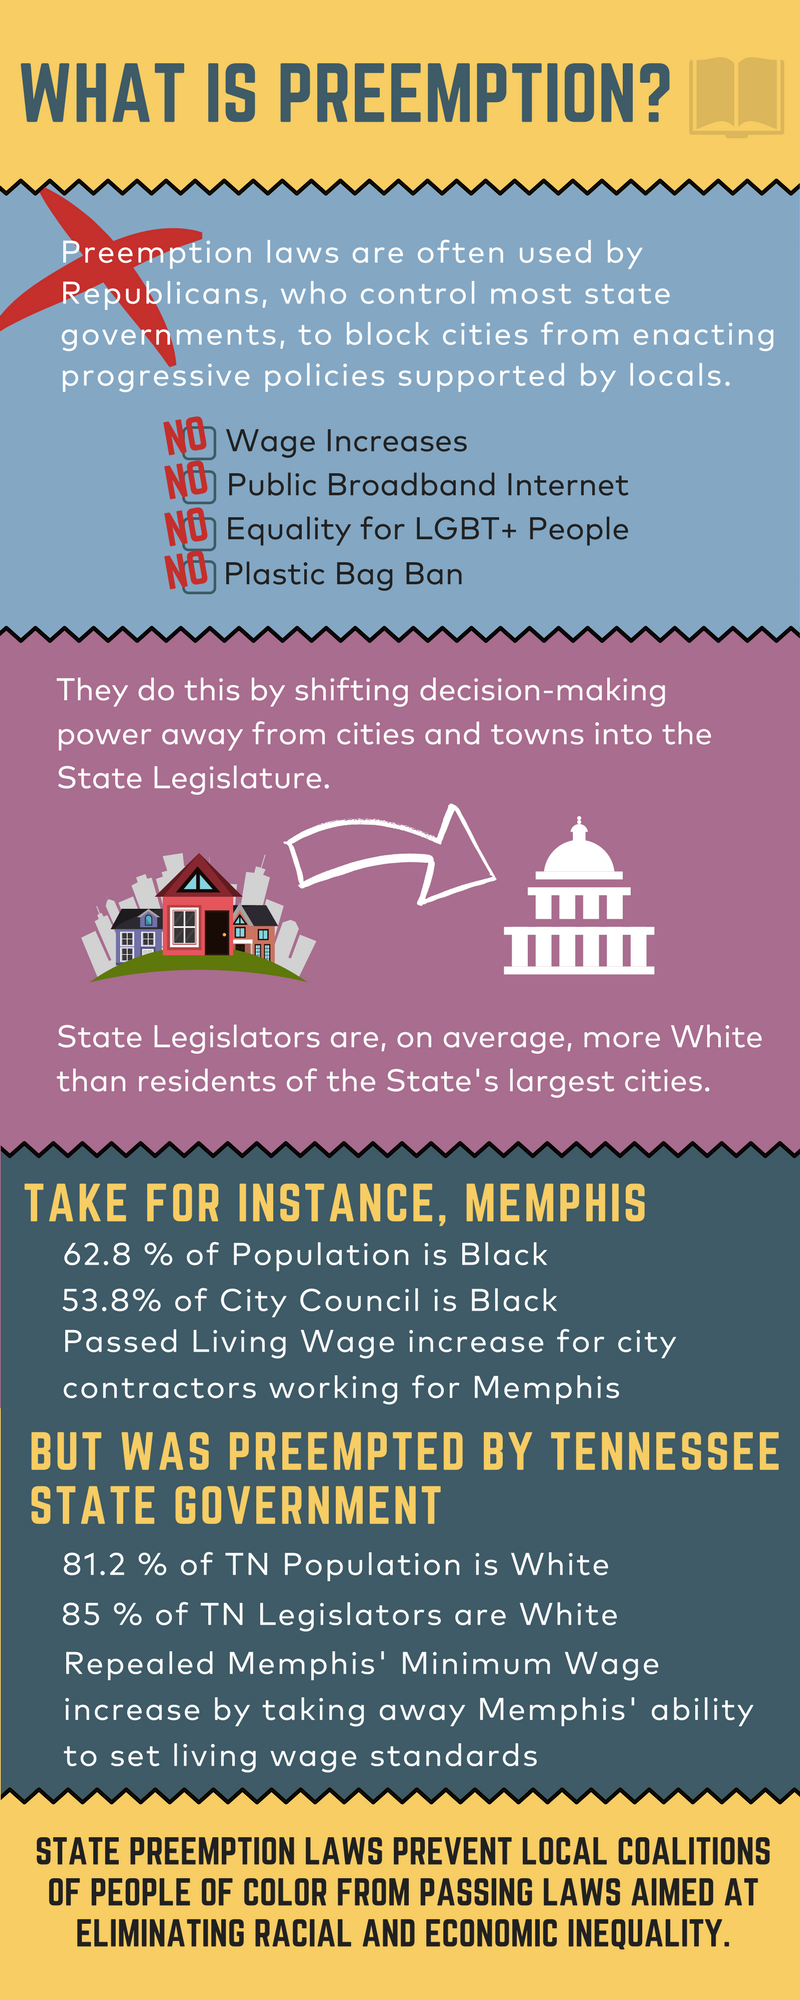 Preemption_Laws_in_Memphis_(2).png